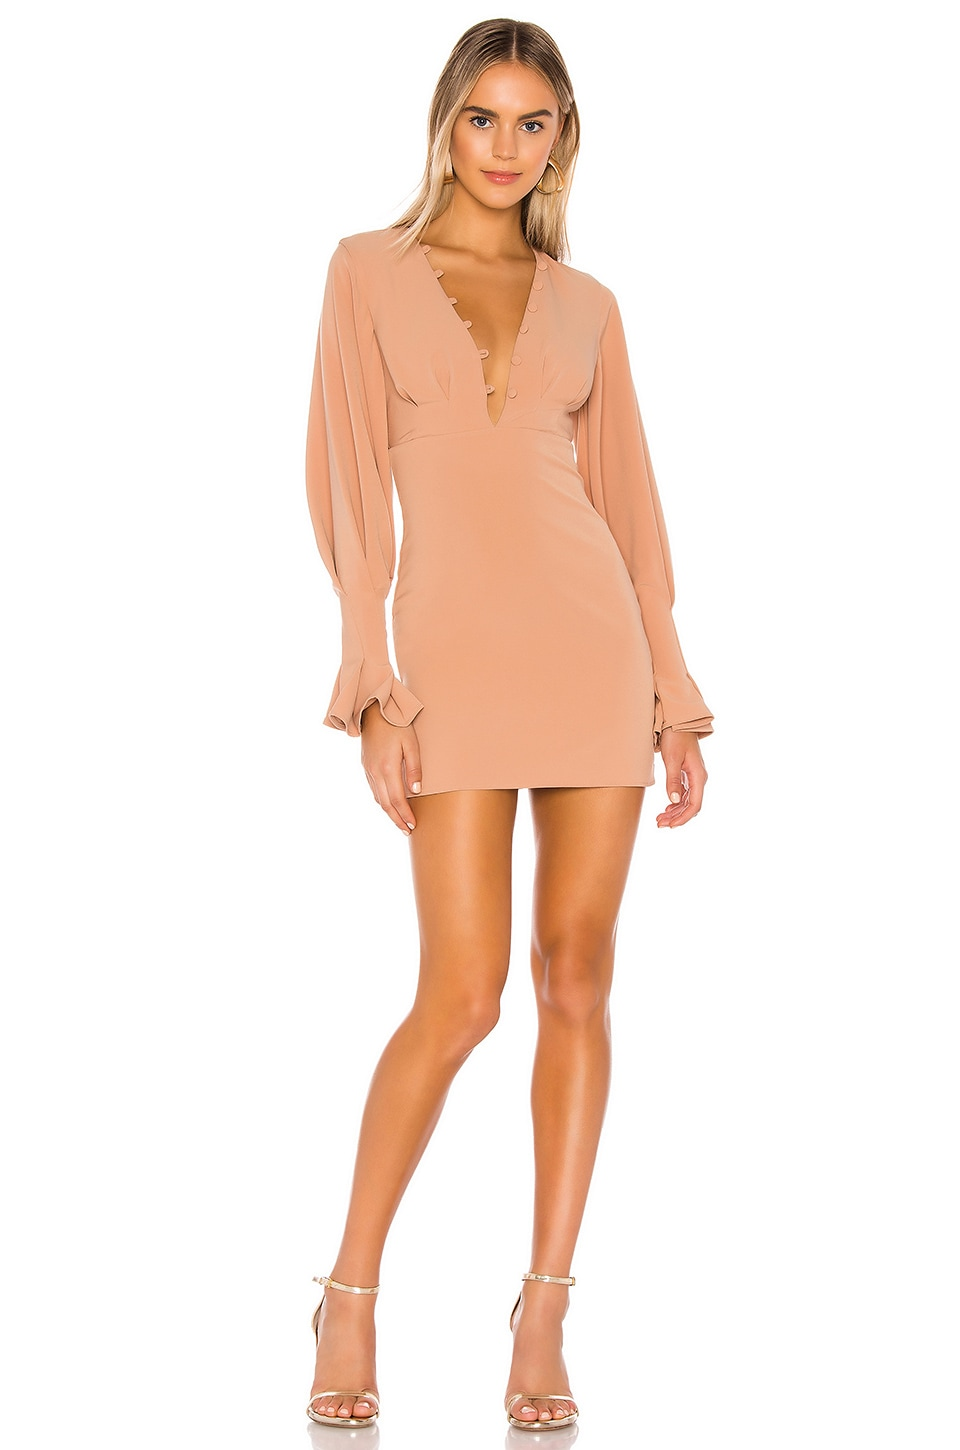 Lovers + Friends Elena Mini Dress in Neutral